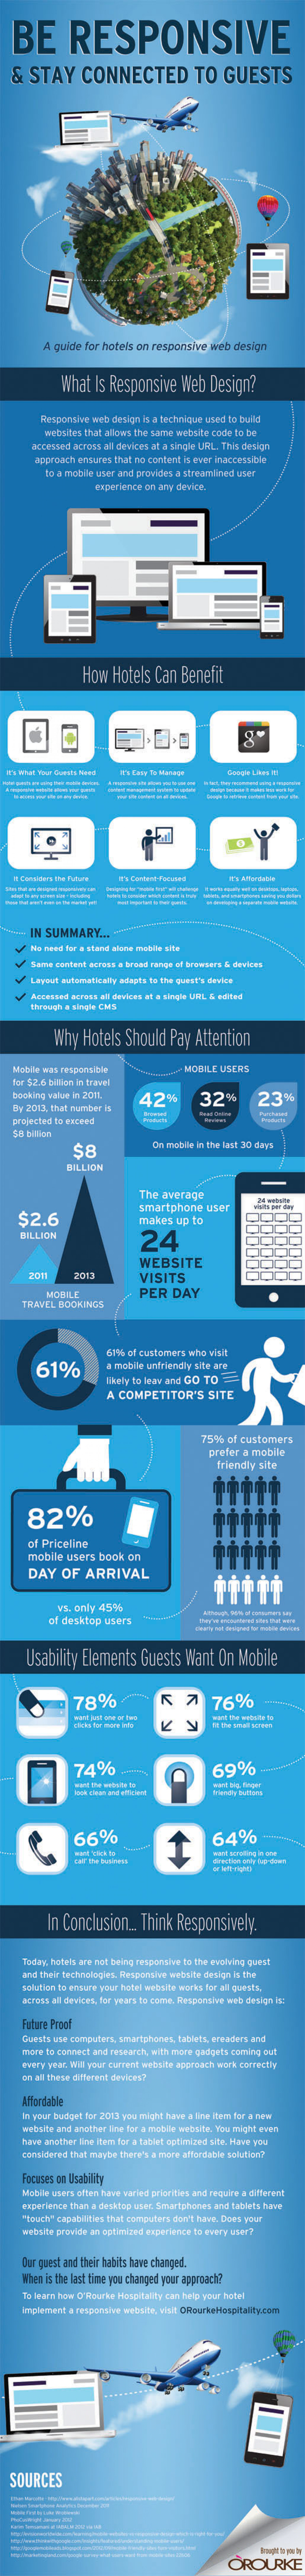 Using Responsive Website Design To Stay Connected With Guests Infographic